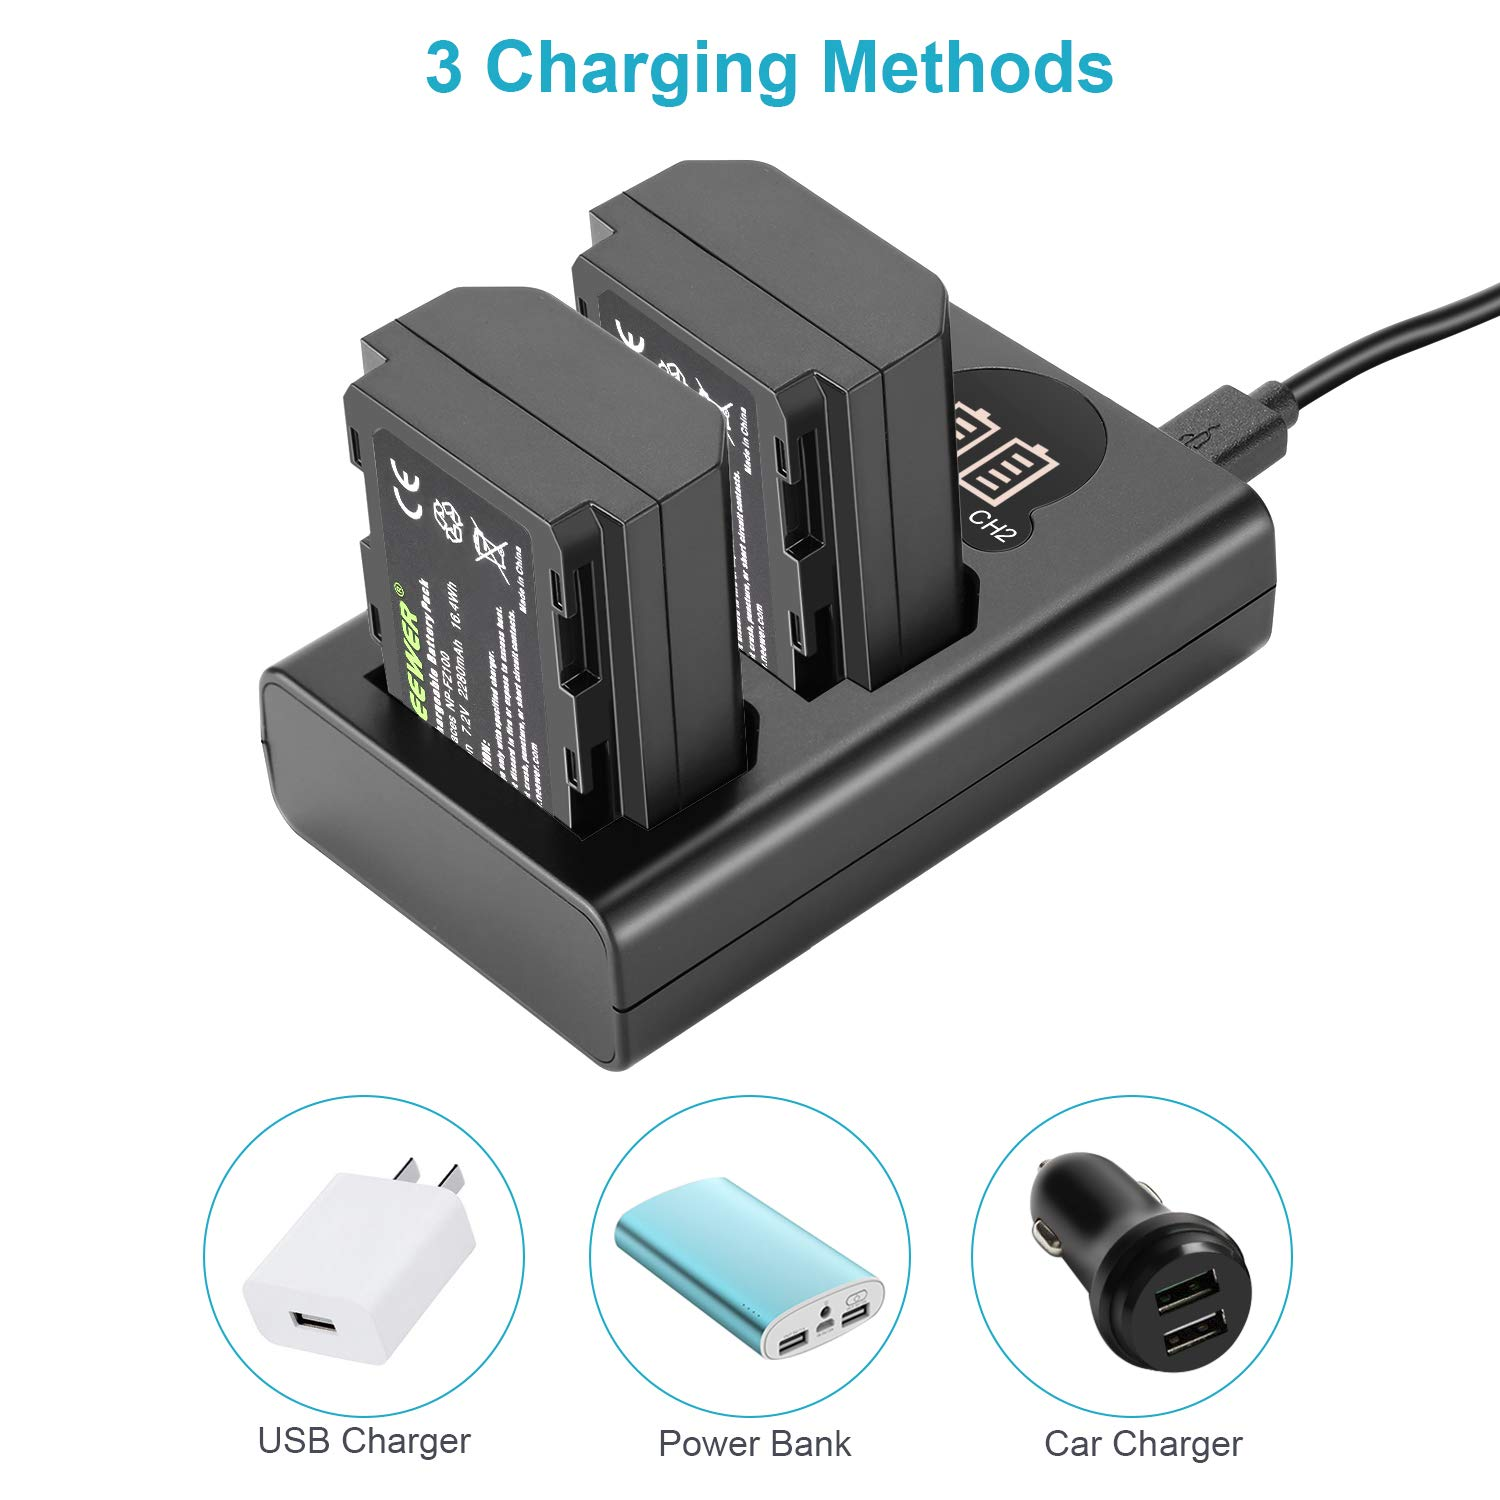 Dual USB Battery Charger with LCD Display Compatible with Sony A9 A7III A7RIII Cameras Neewer NP-FZ100 Replacement Battery Charger Set 2-Pack 7.2V 2280mAh Battery, Versatile Charging Option